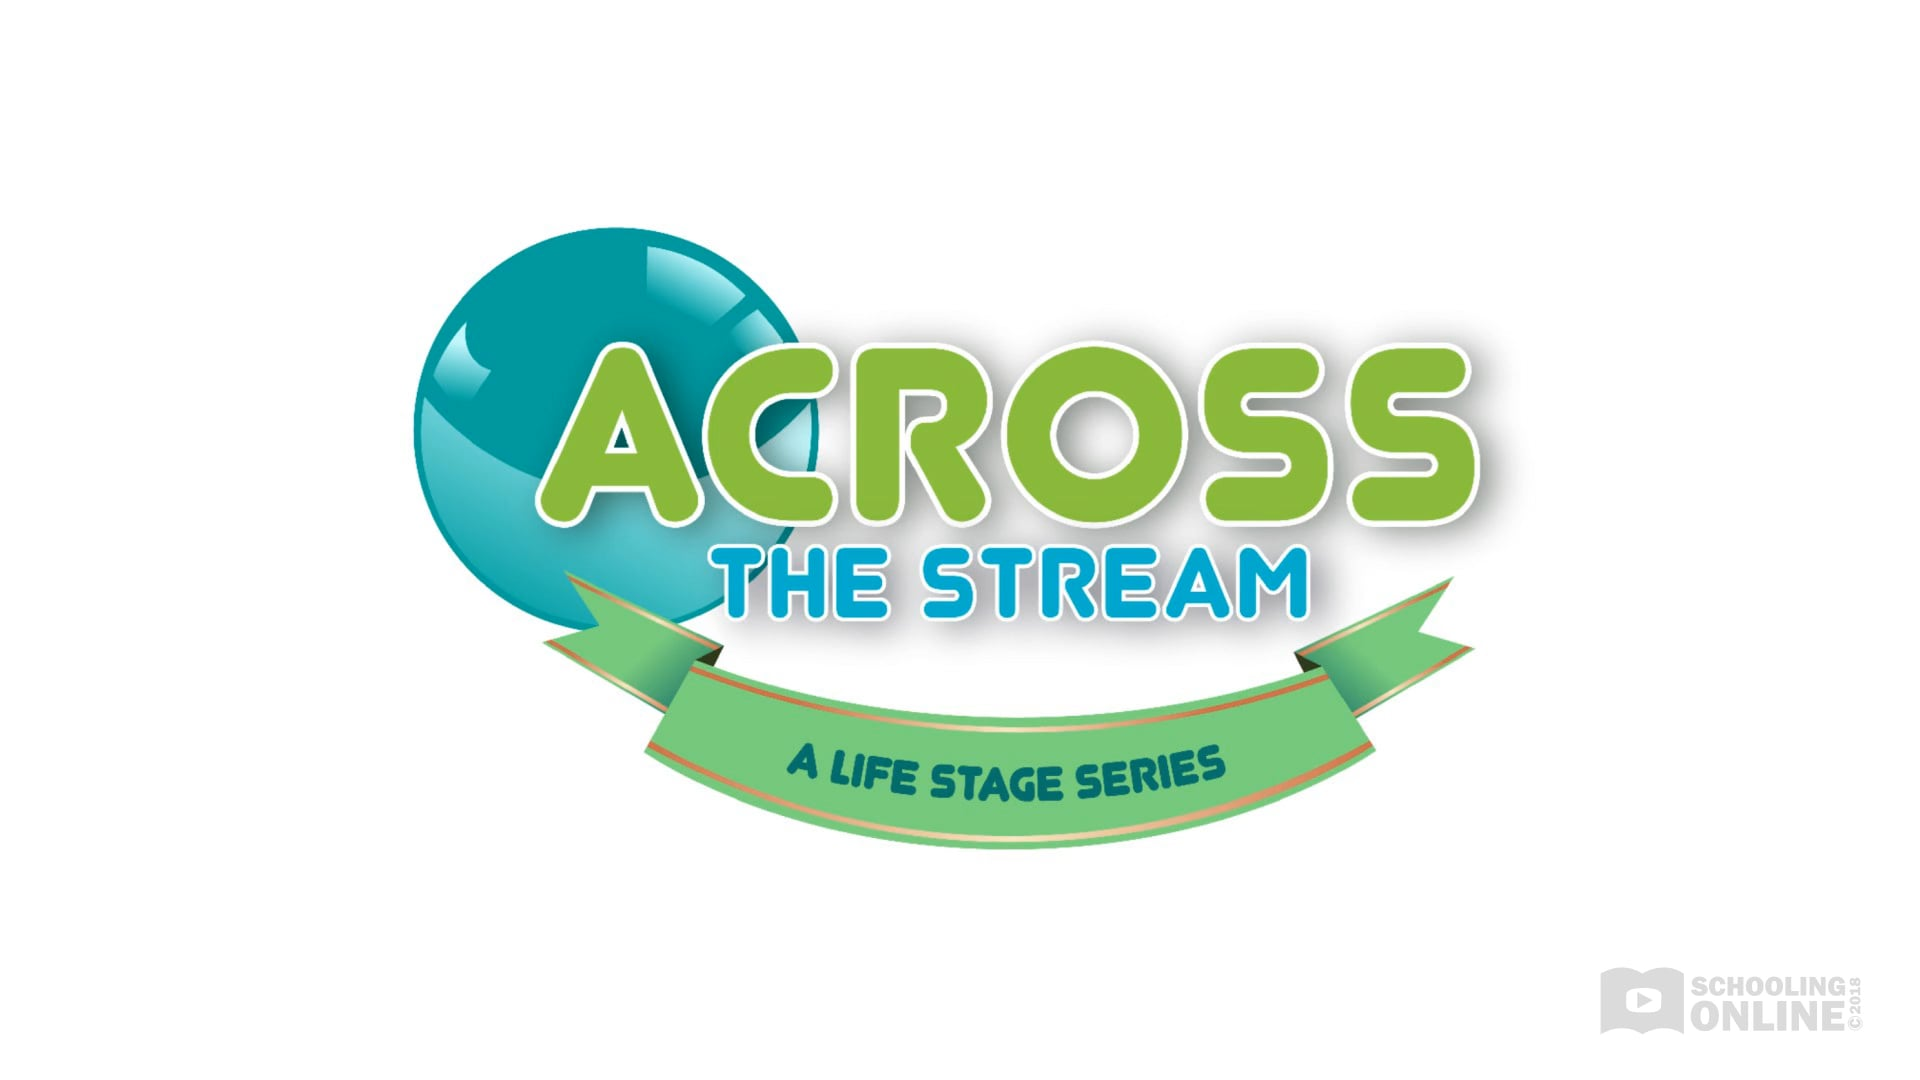 Across The Stream - The Life Stage Series